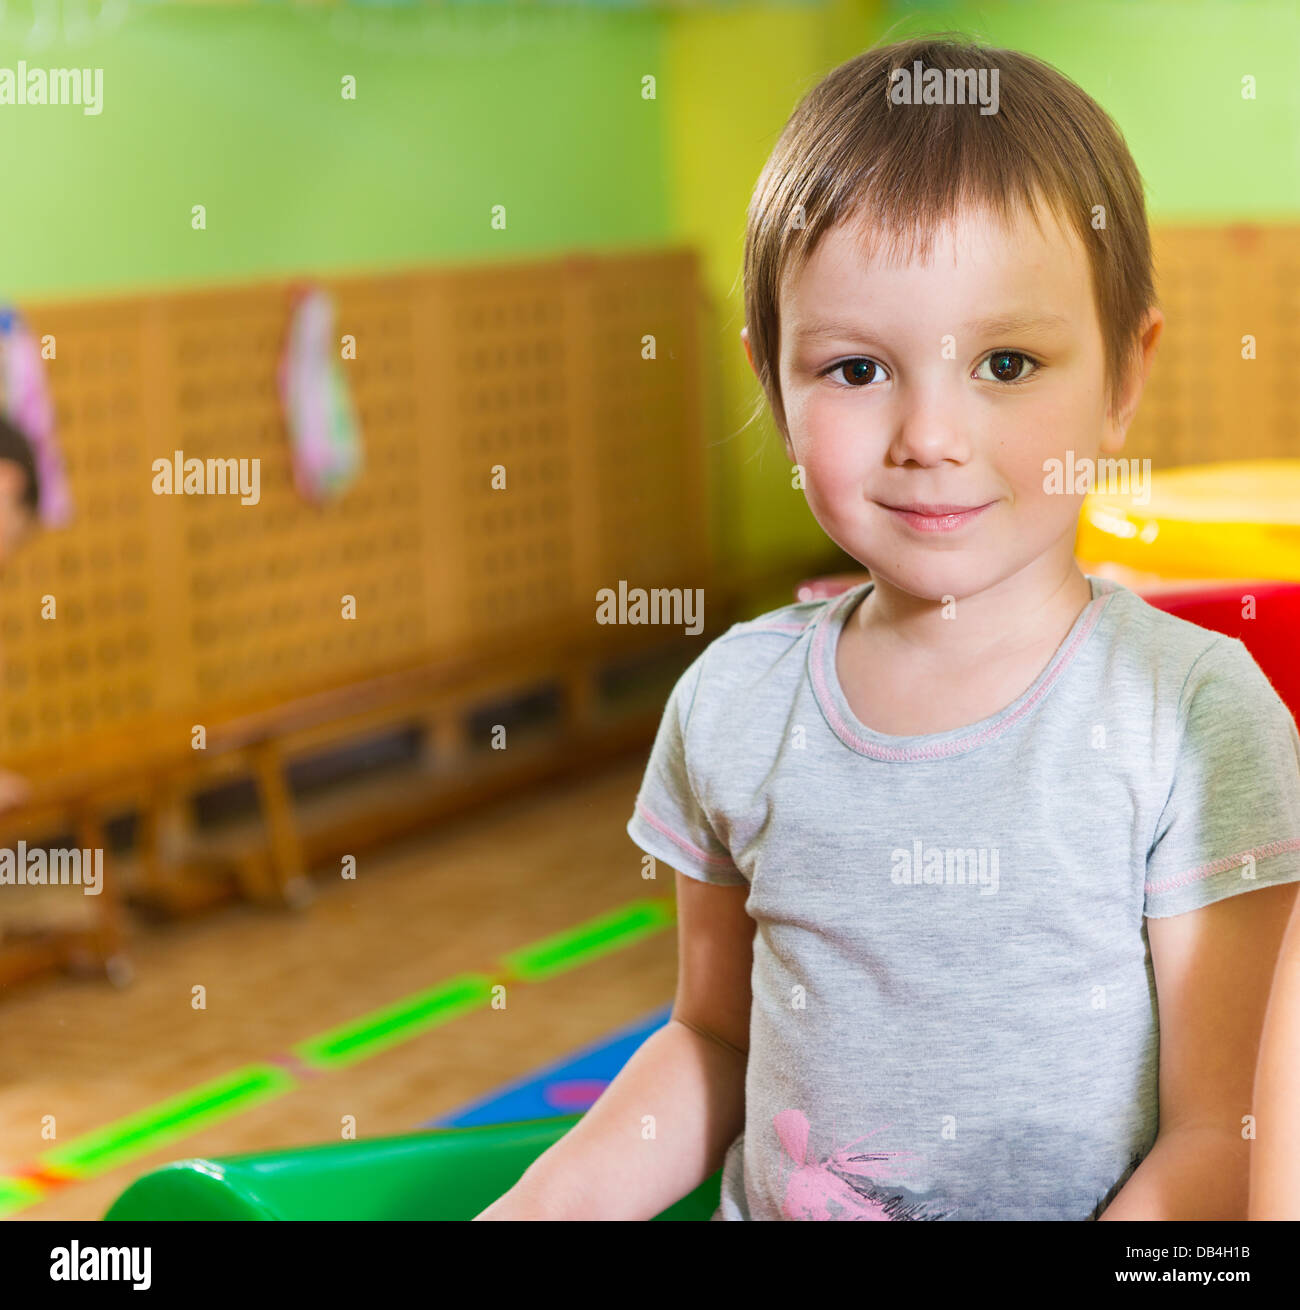 Cute little girl portrait in daycare gym Stock Photo